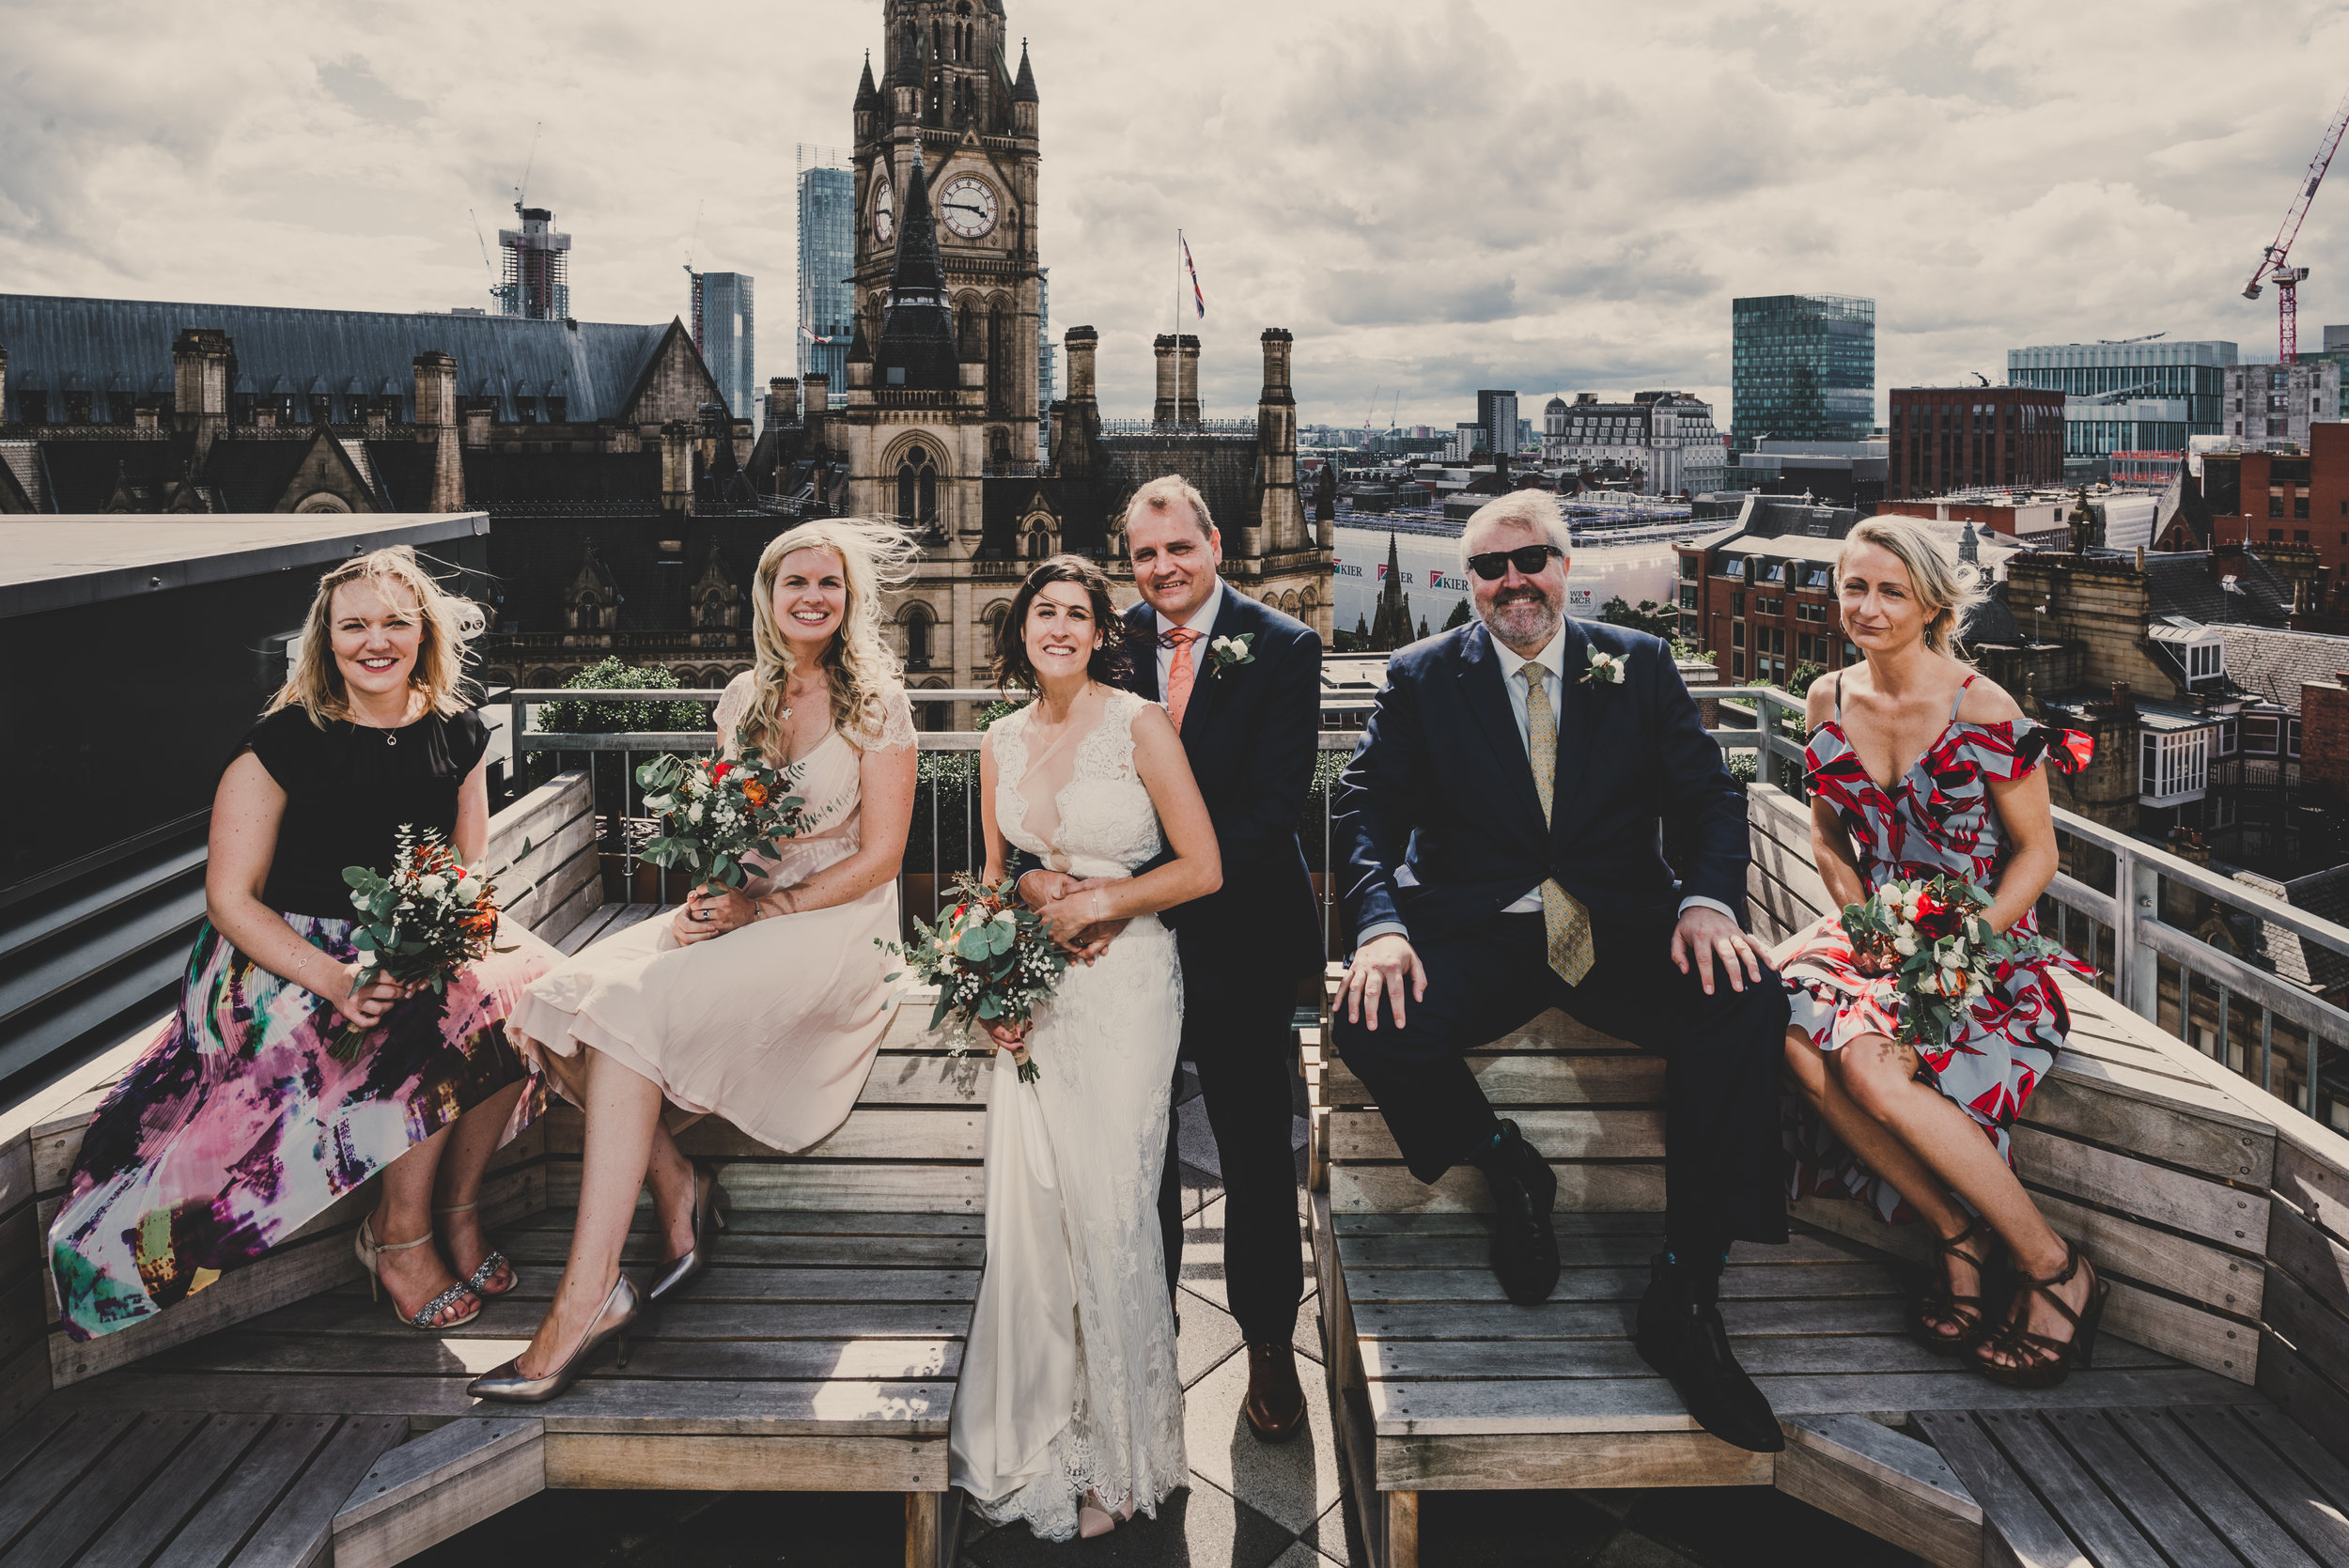 australian-elopement-manchester-king-street-townhouse-wedding-photography (41).jpg